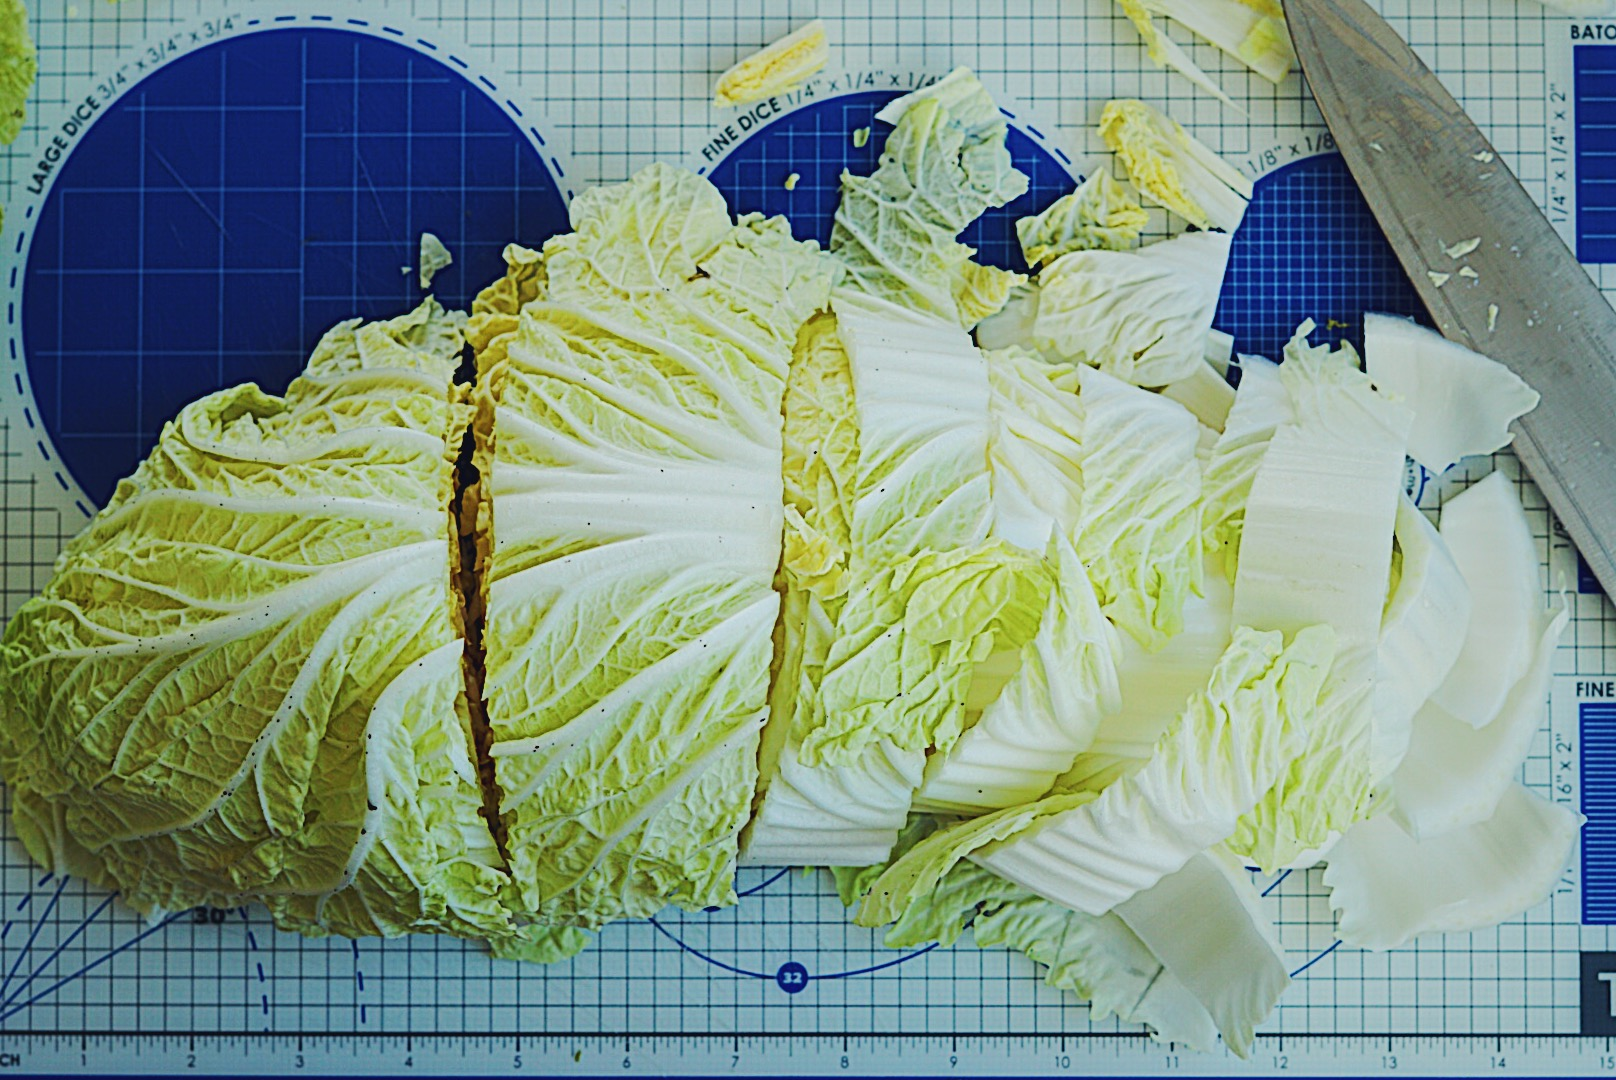 Notice how my cuts at the tough base of the kimchi is smaller than the leafy tops. This is to ensure more even brining of the cabbage.